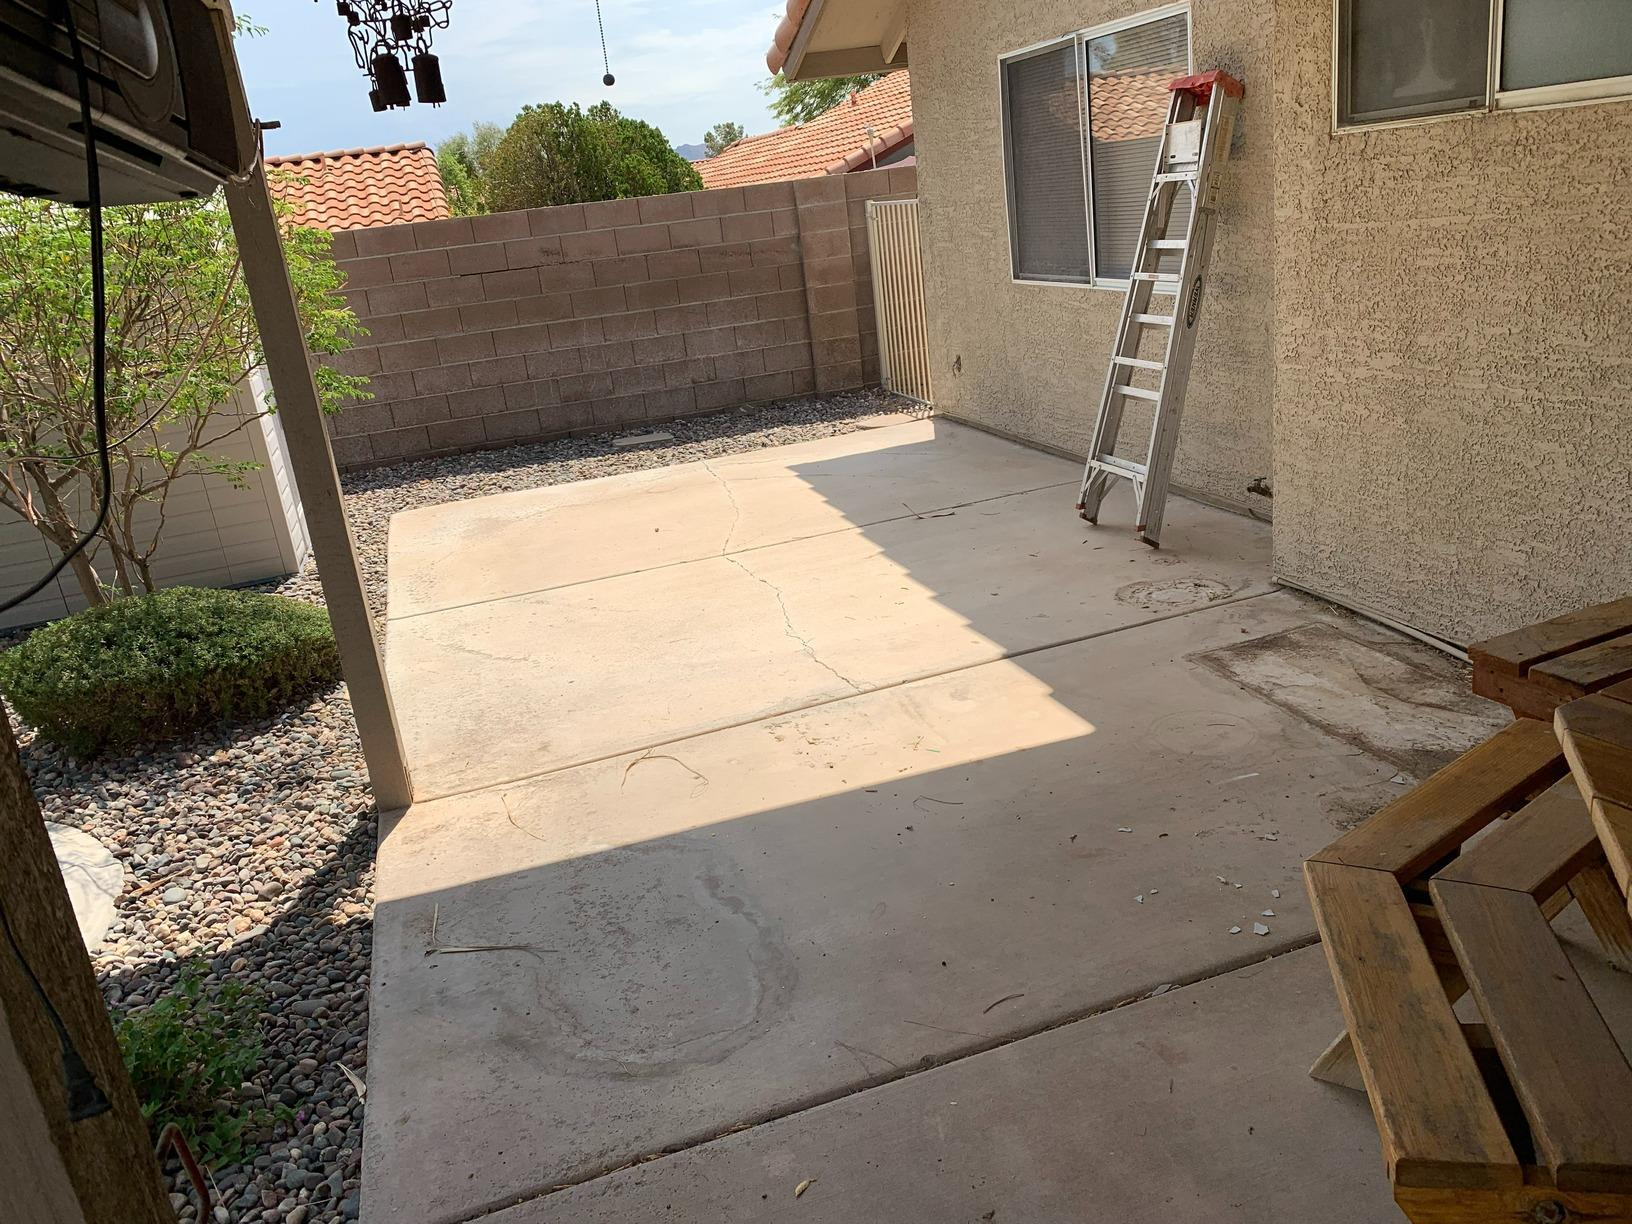 Junk Removal in Henderson, Nevada - After Photo